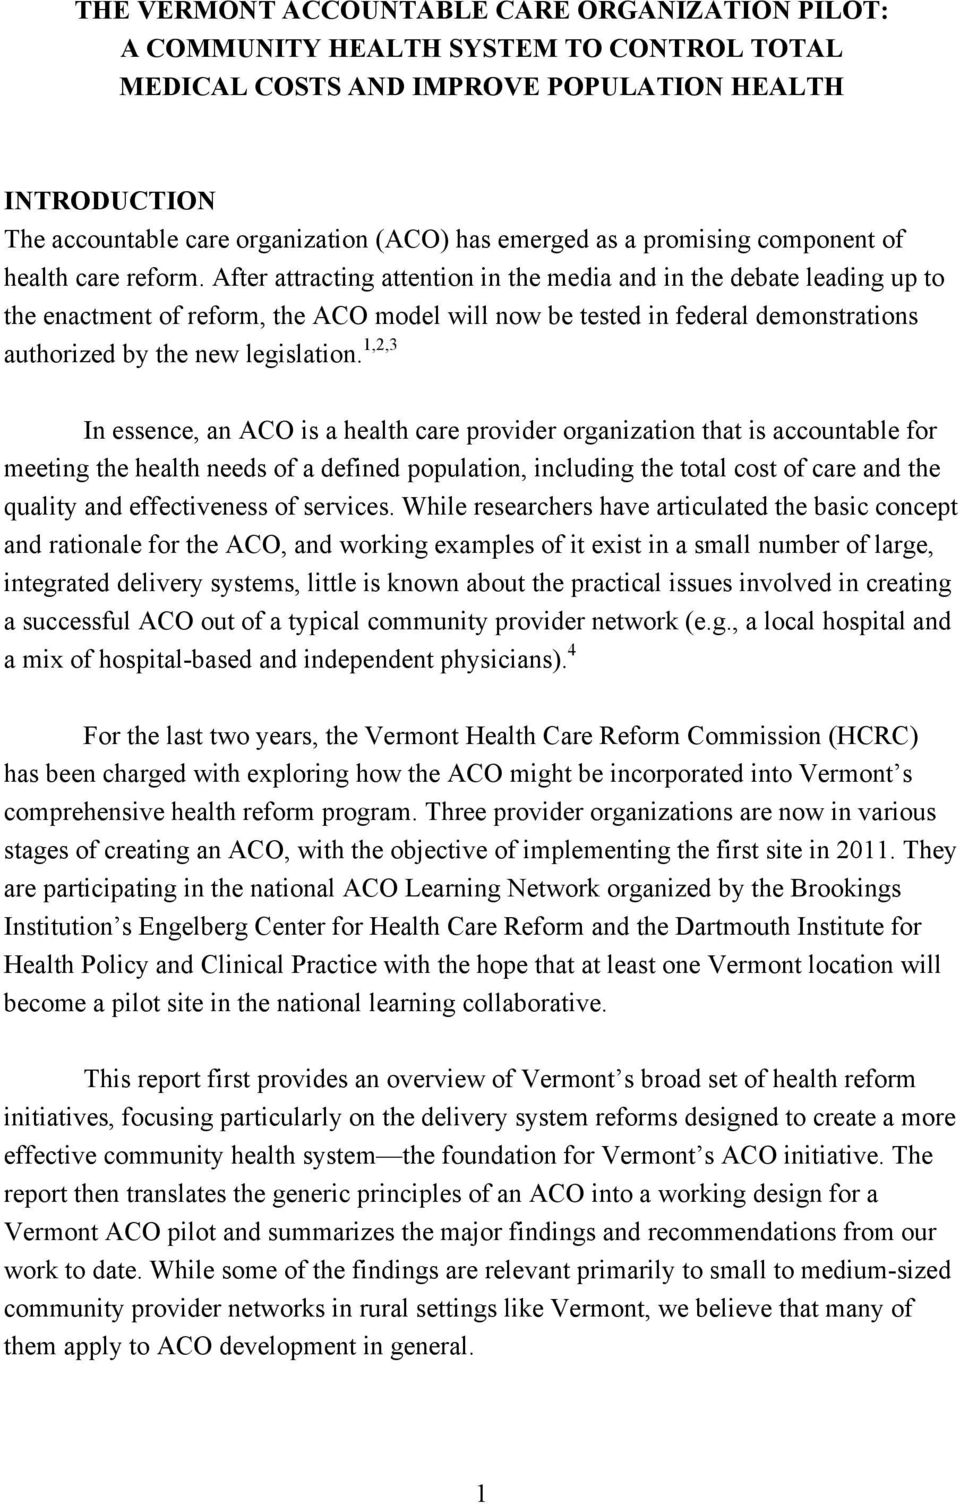 After attracting attention in the media and in the debate leading up to the enactment of reform, the ACO model will now be tested in federal demonstrations authorized by the new legislation.